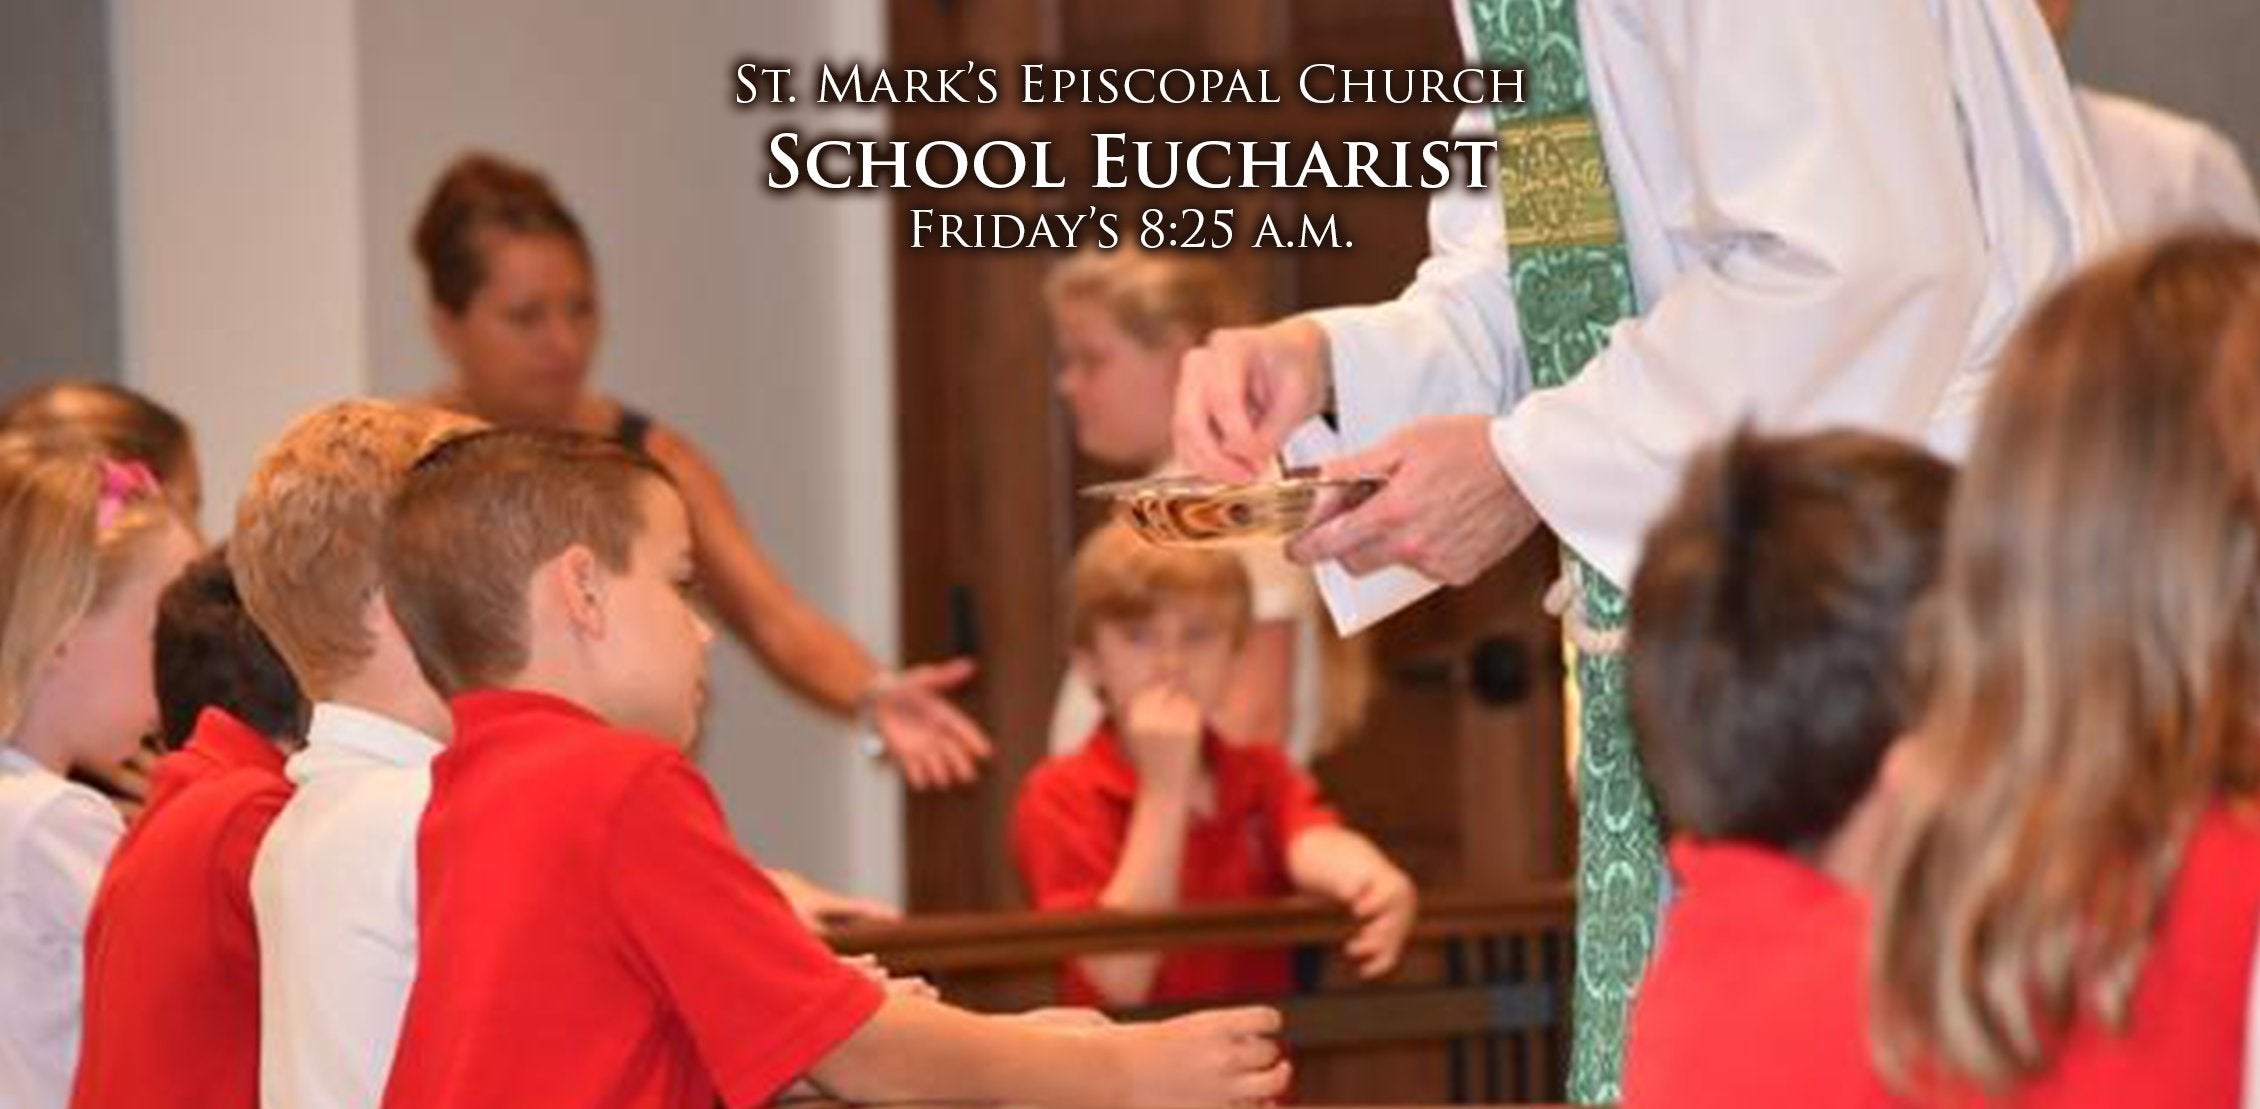 School Eucharist